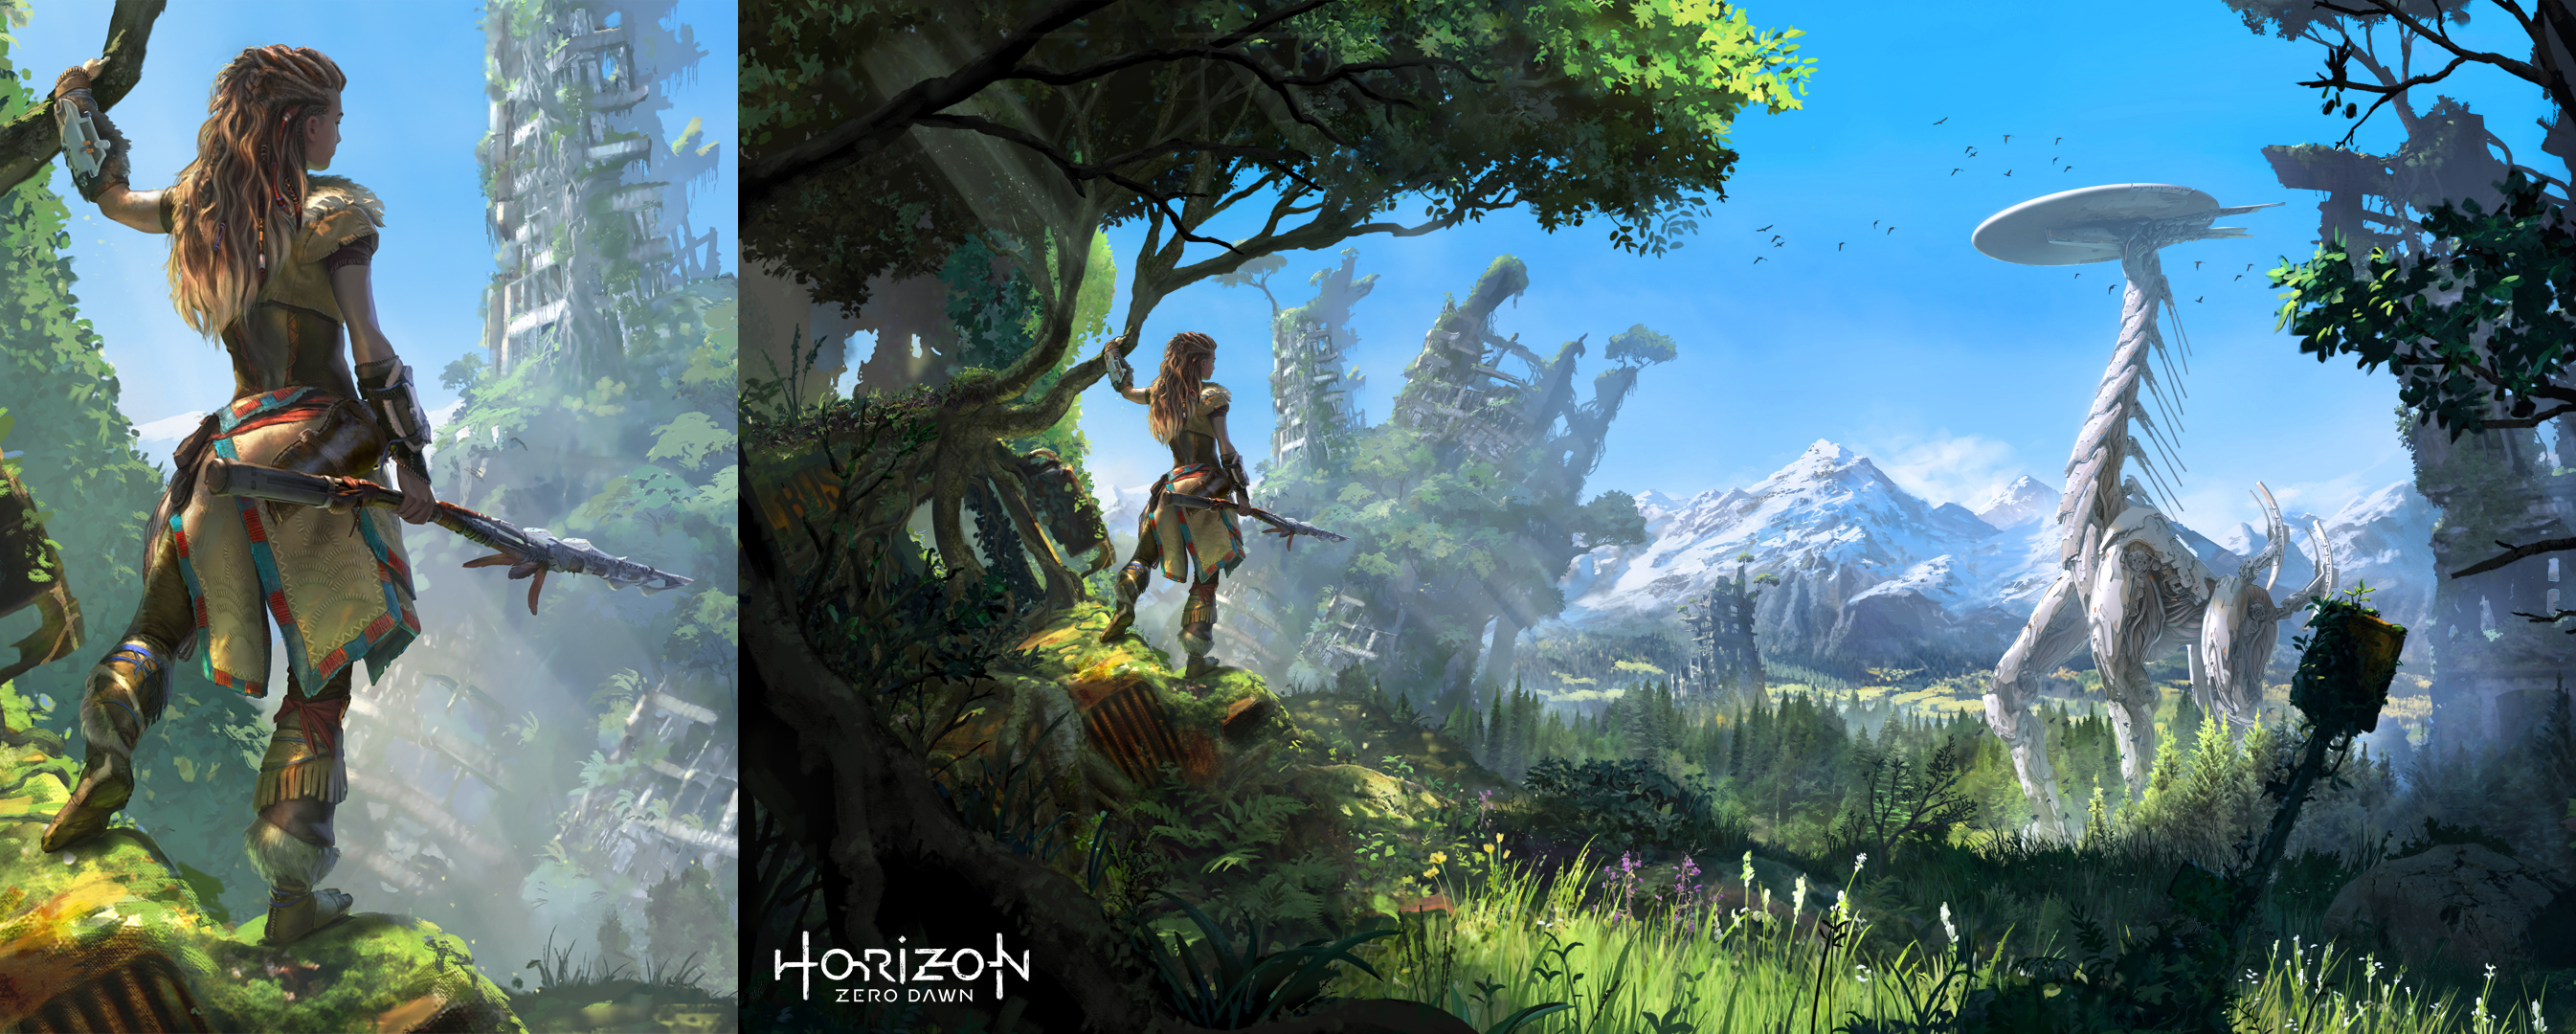 Horizon zero dawn trailer guerrilla post apocalyptic - Horizon zero dawn android wallpaper ...